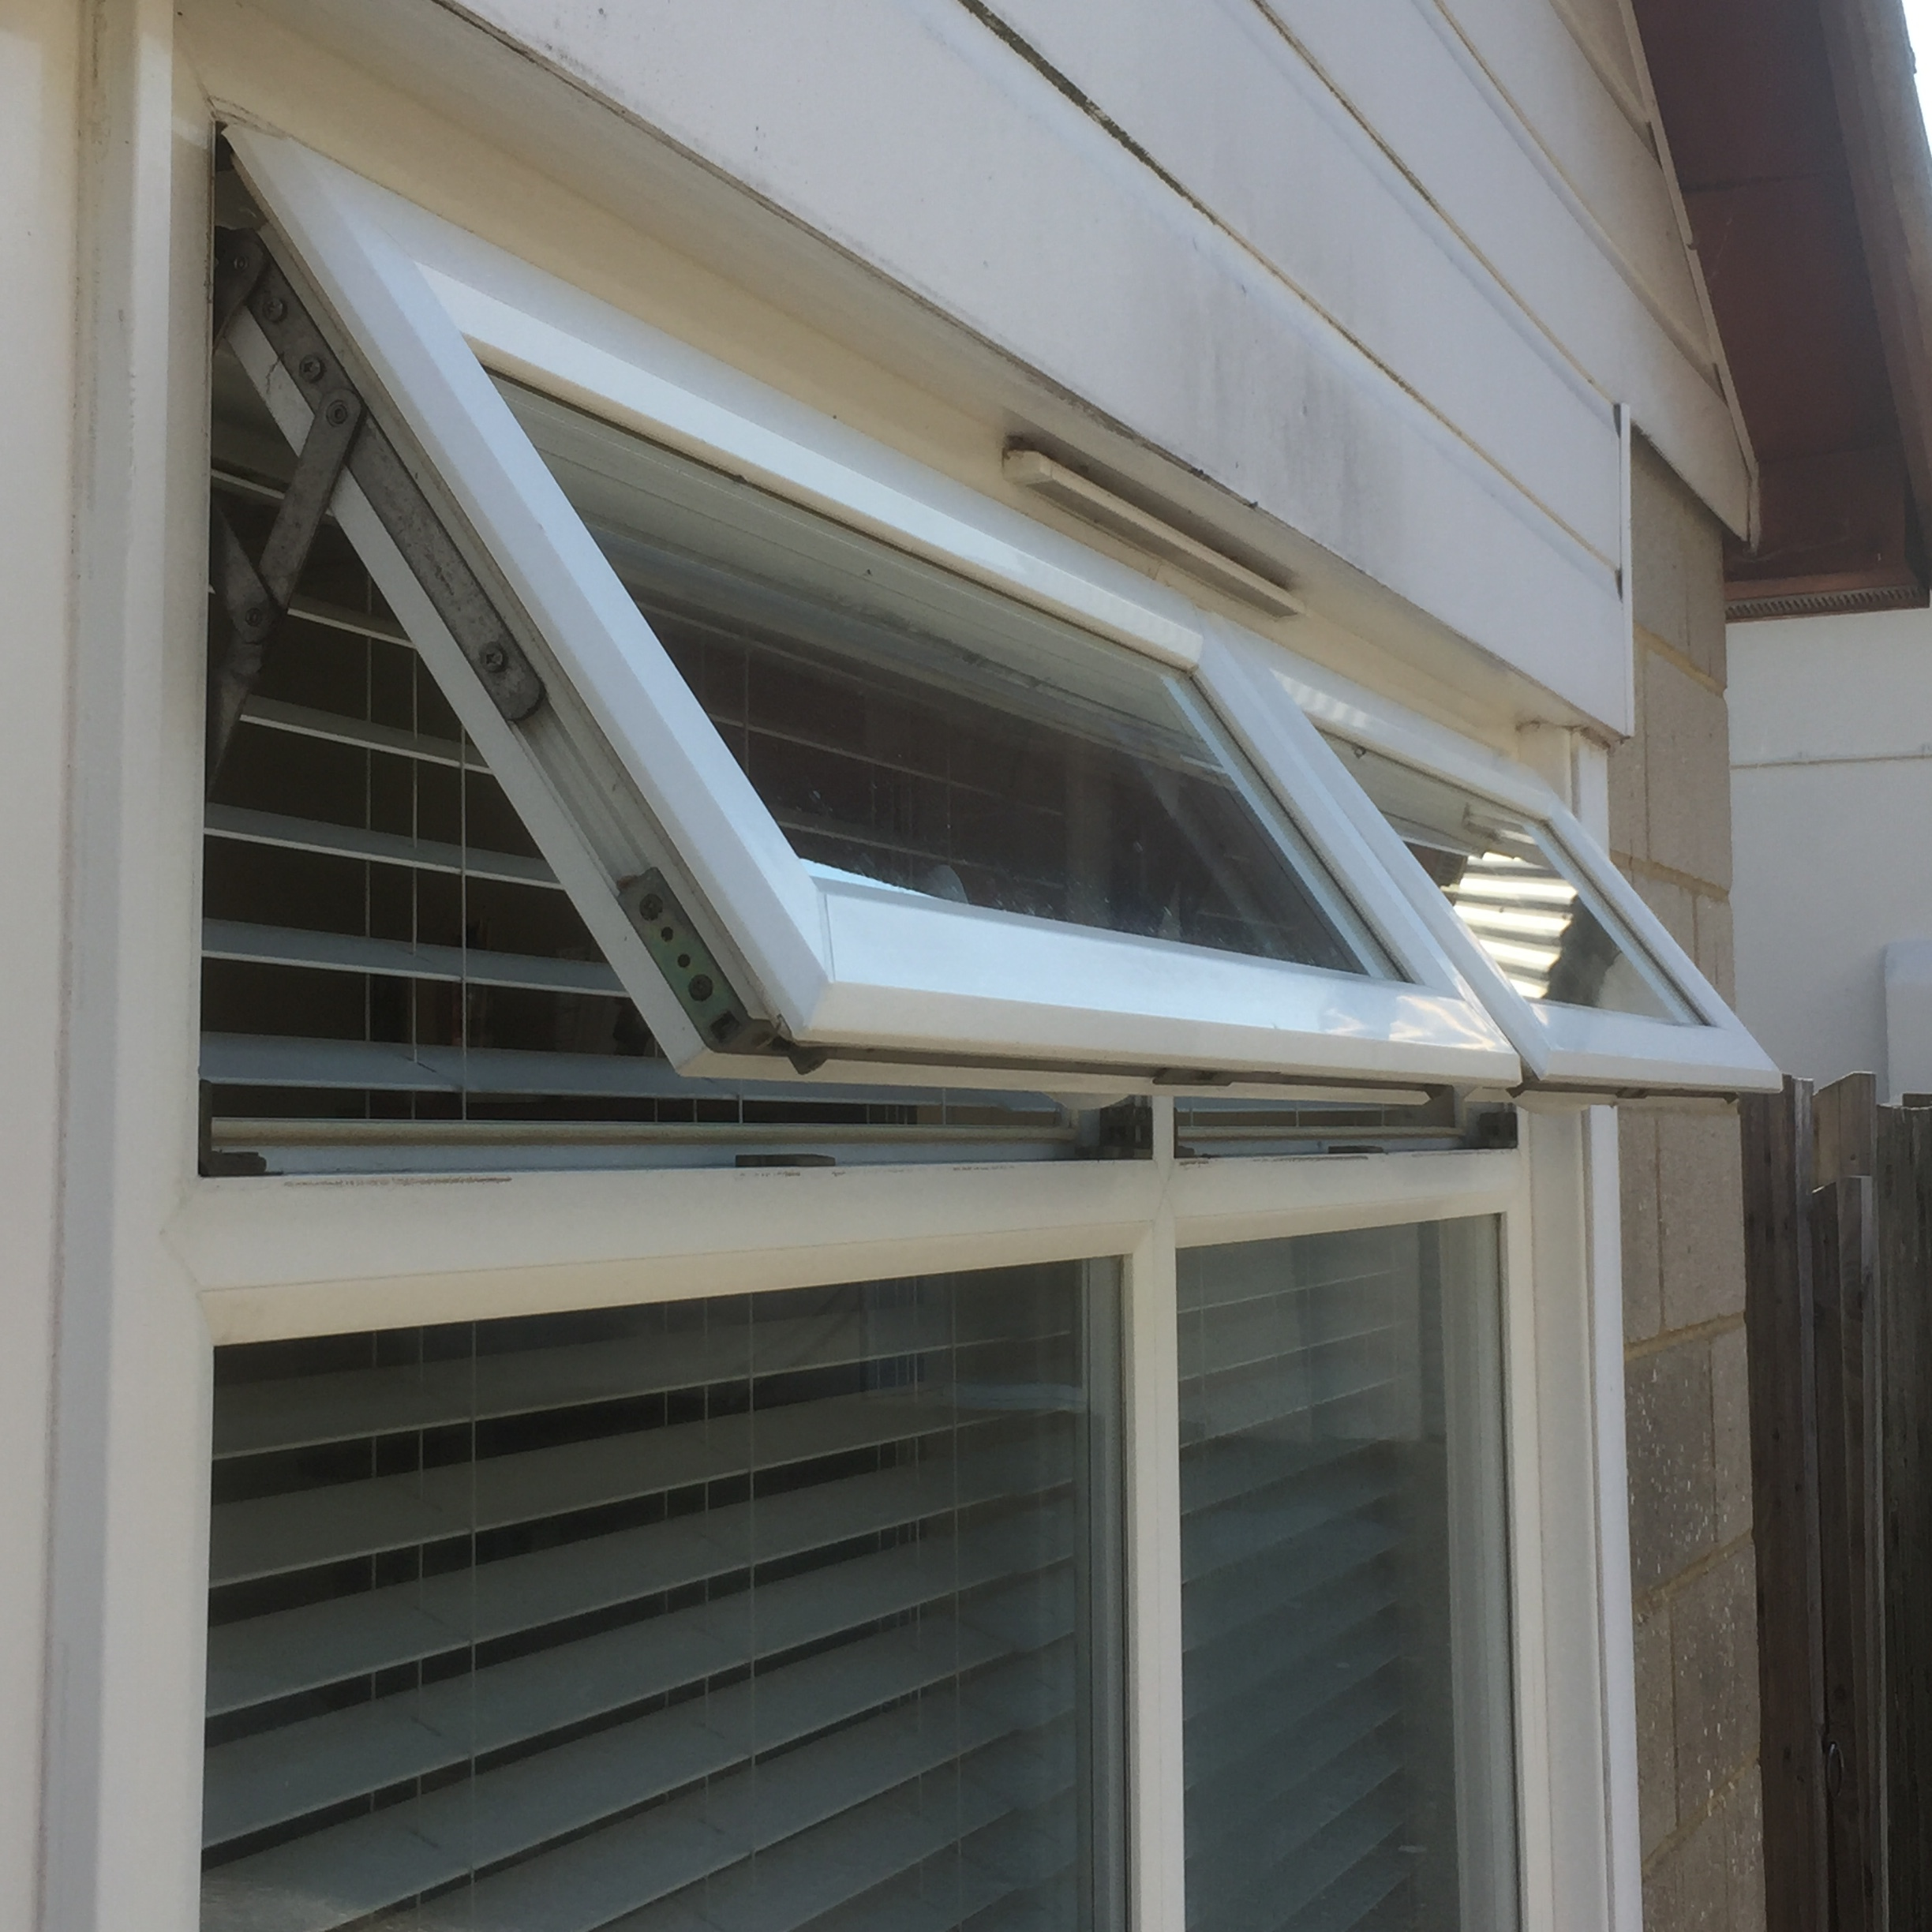 Open windows, flagged blinds. A perfect cooling combination!